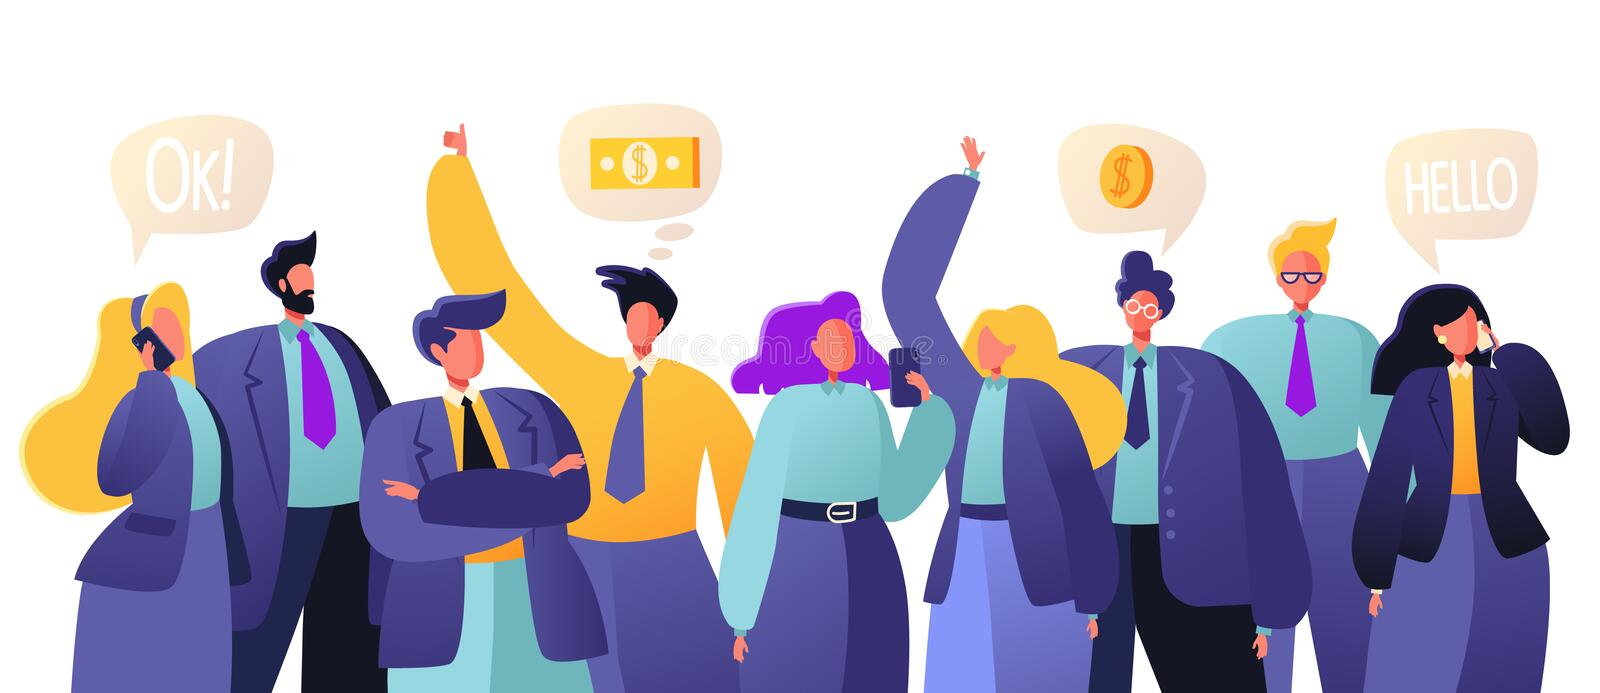 Business teamwork concept. People decide business questions, confer. Group of business people, office workers standing together. Colorful vector illustration royalty free illustration